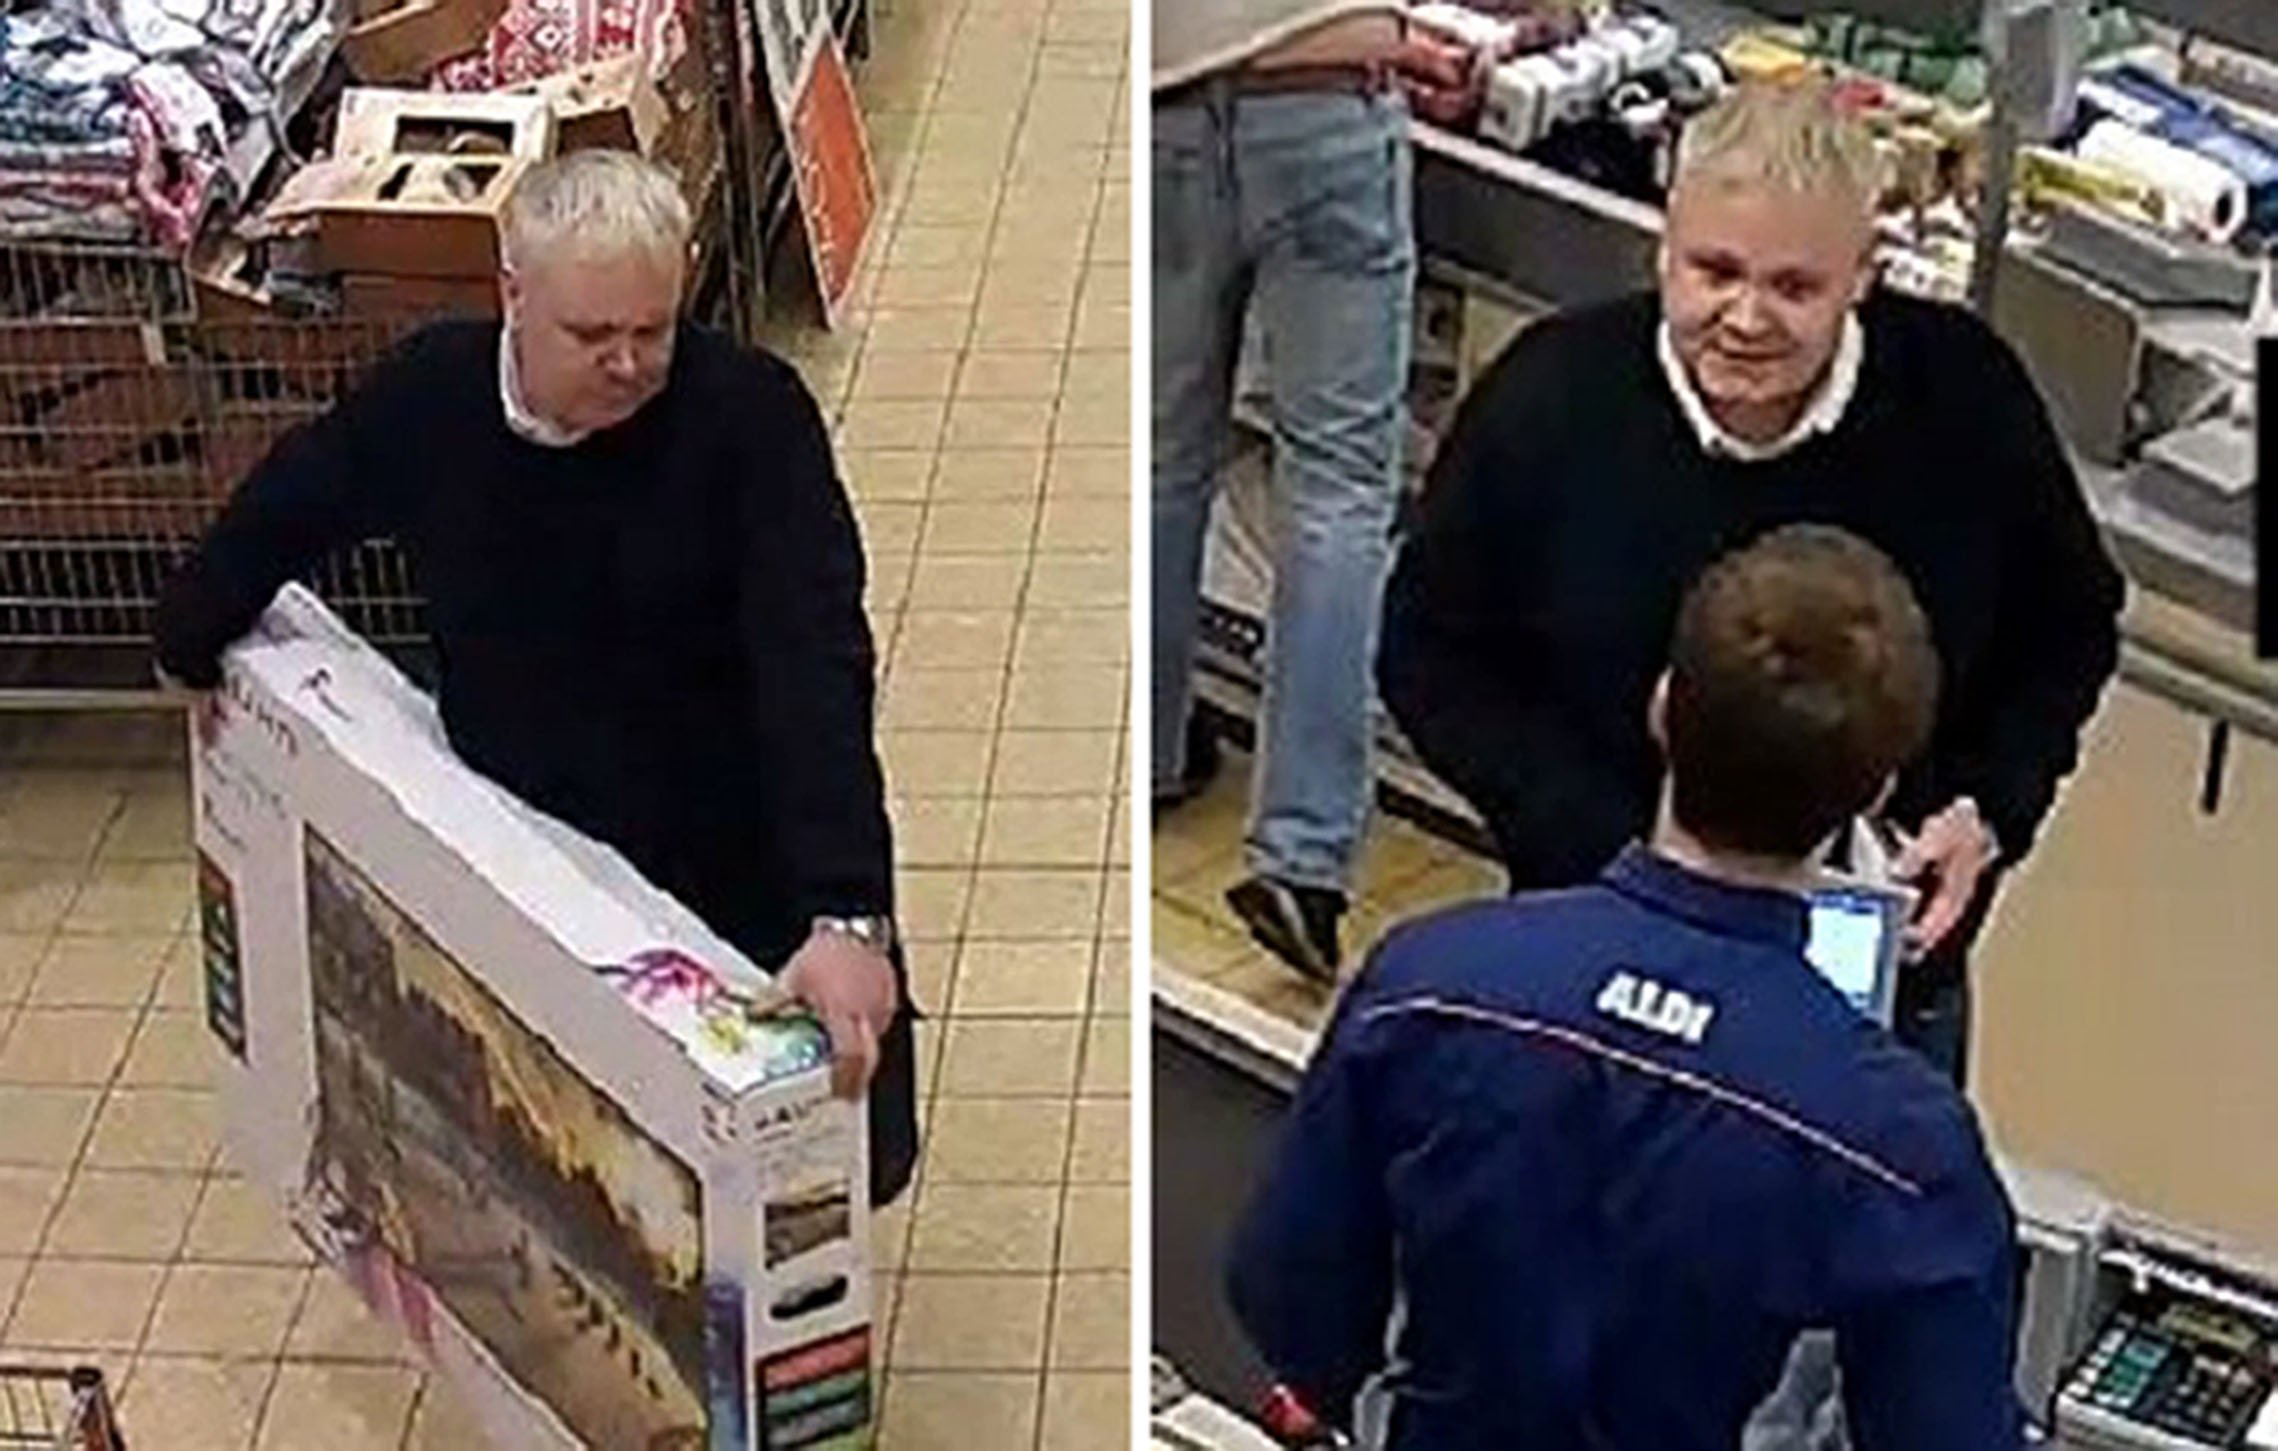 Cocky thief gets £330 'refund' for TV he picks off shop floor and takes to cashier